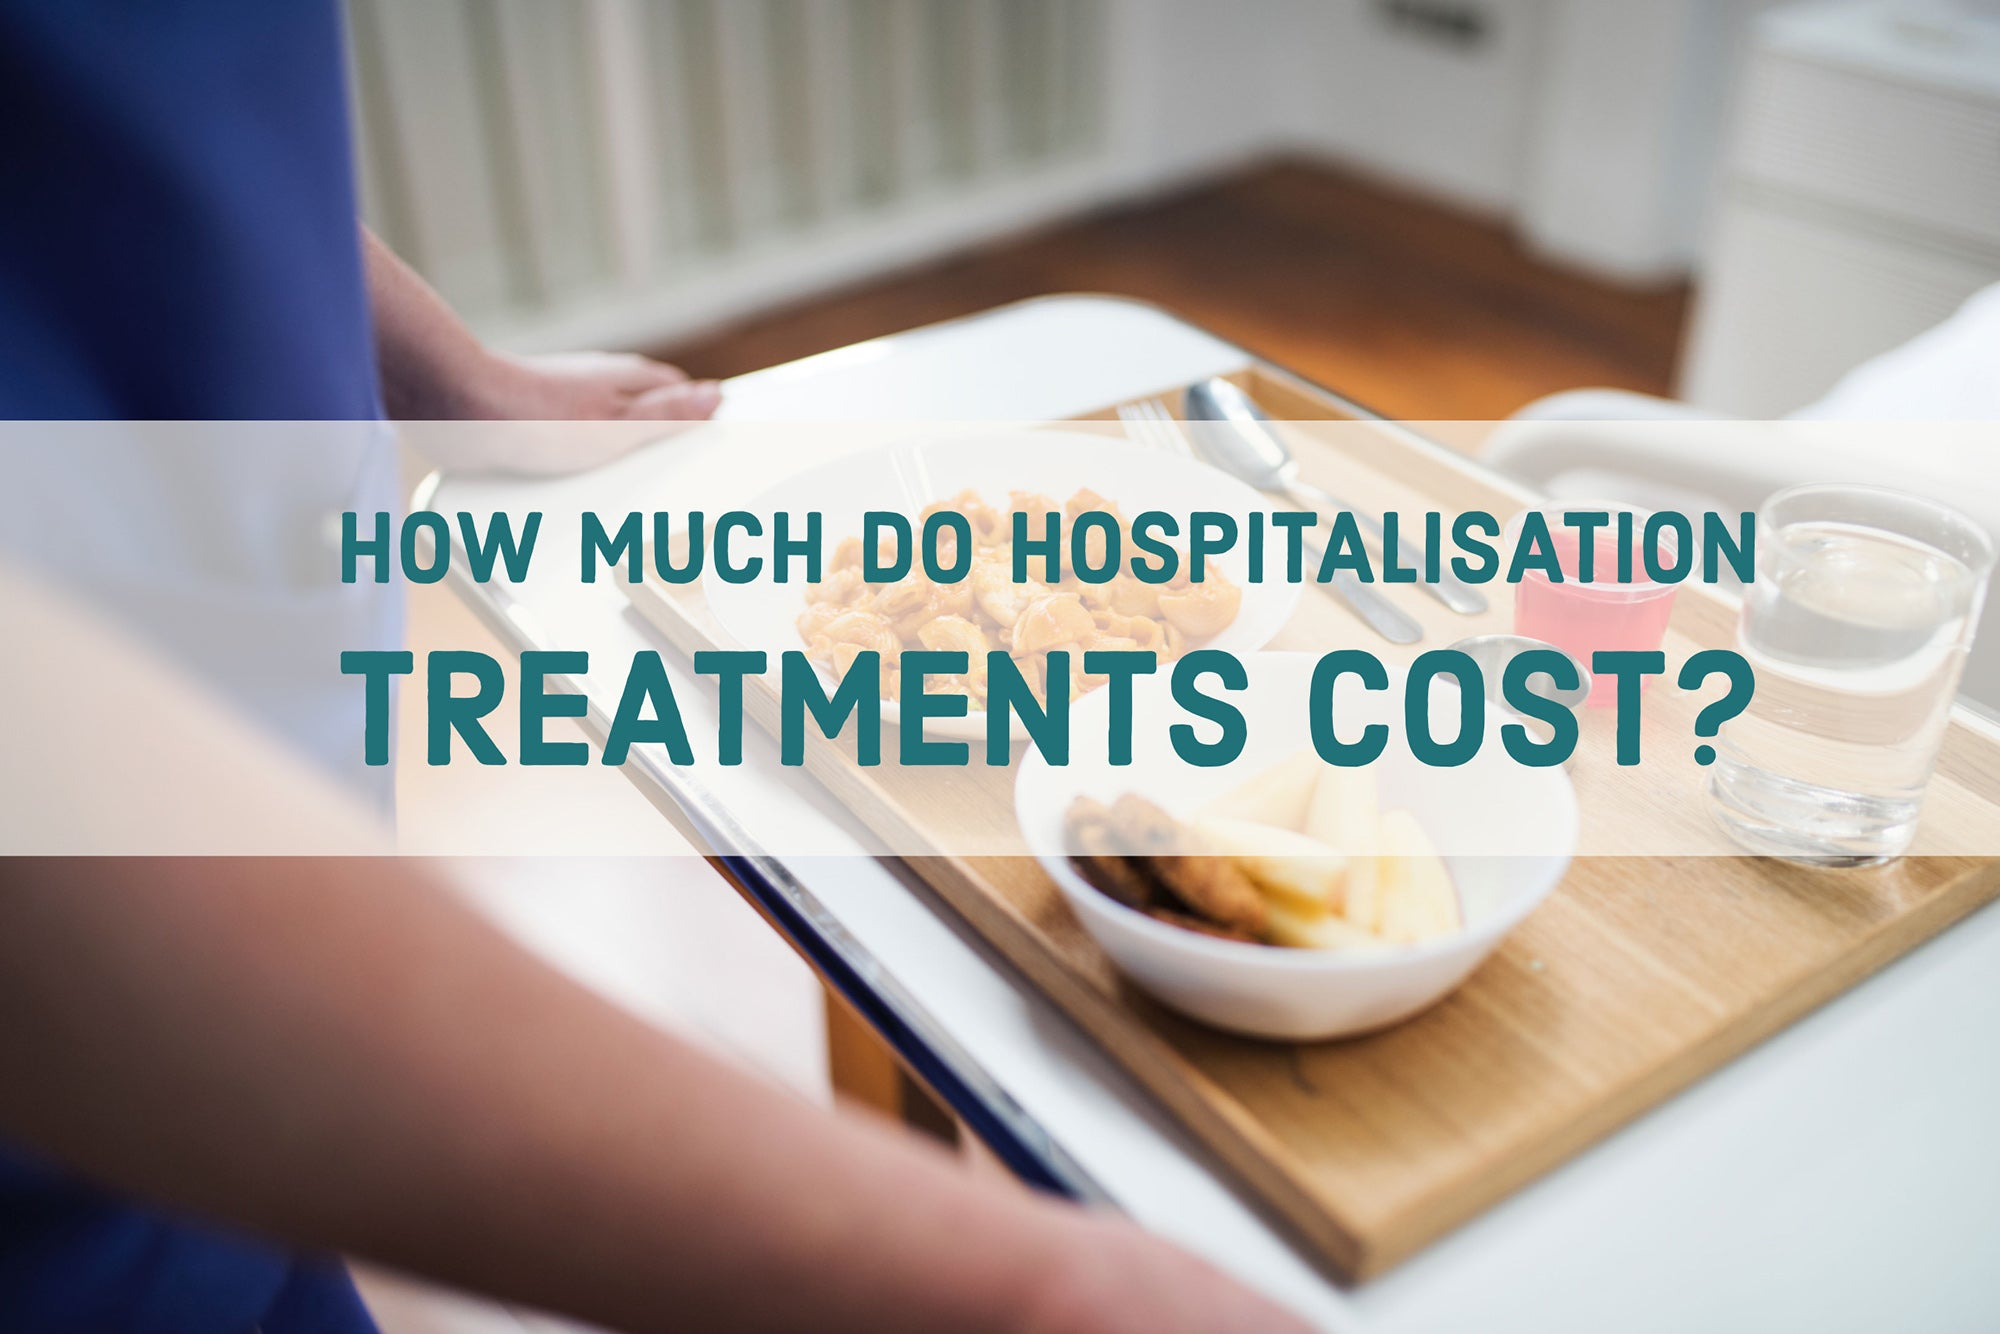 The insurance everyone should have - Hospitalisation plan. But which to get?